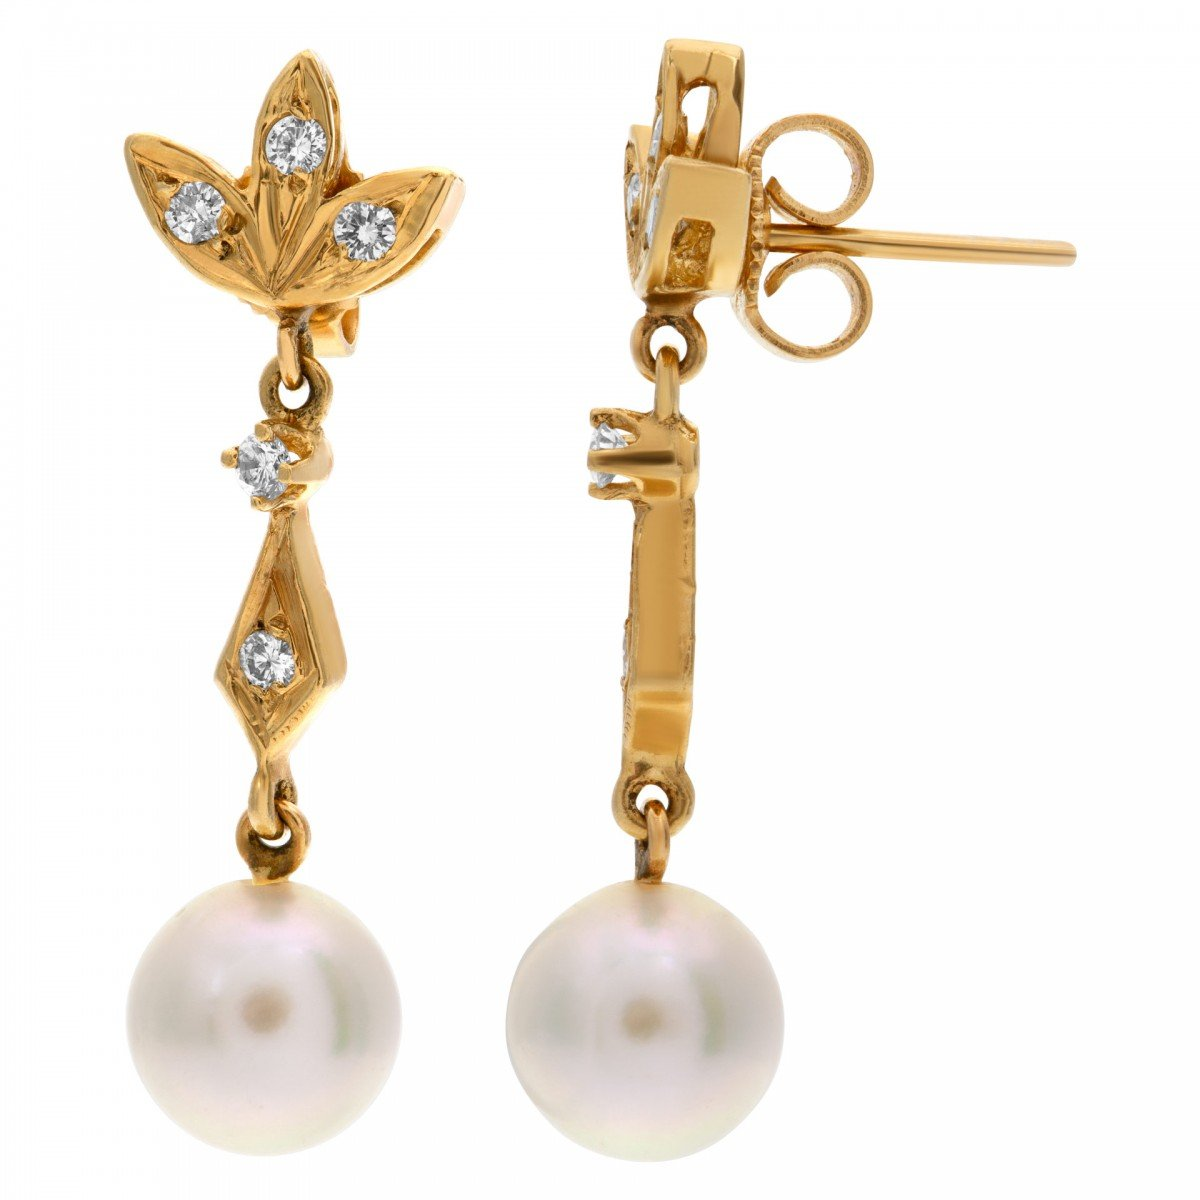 Delicate Dangling Pearl Earring With Diamond Accents Set On 14k Yellow Gold